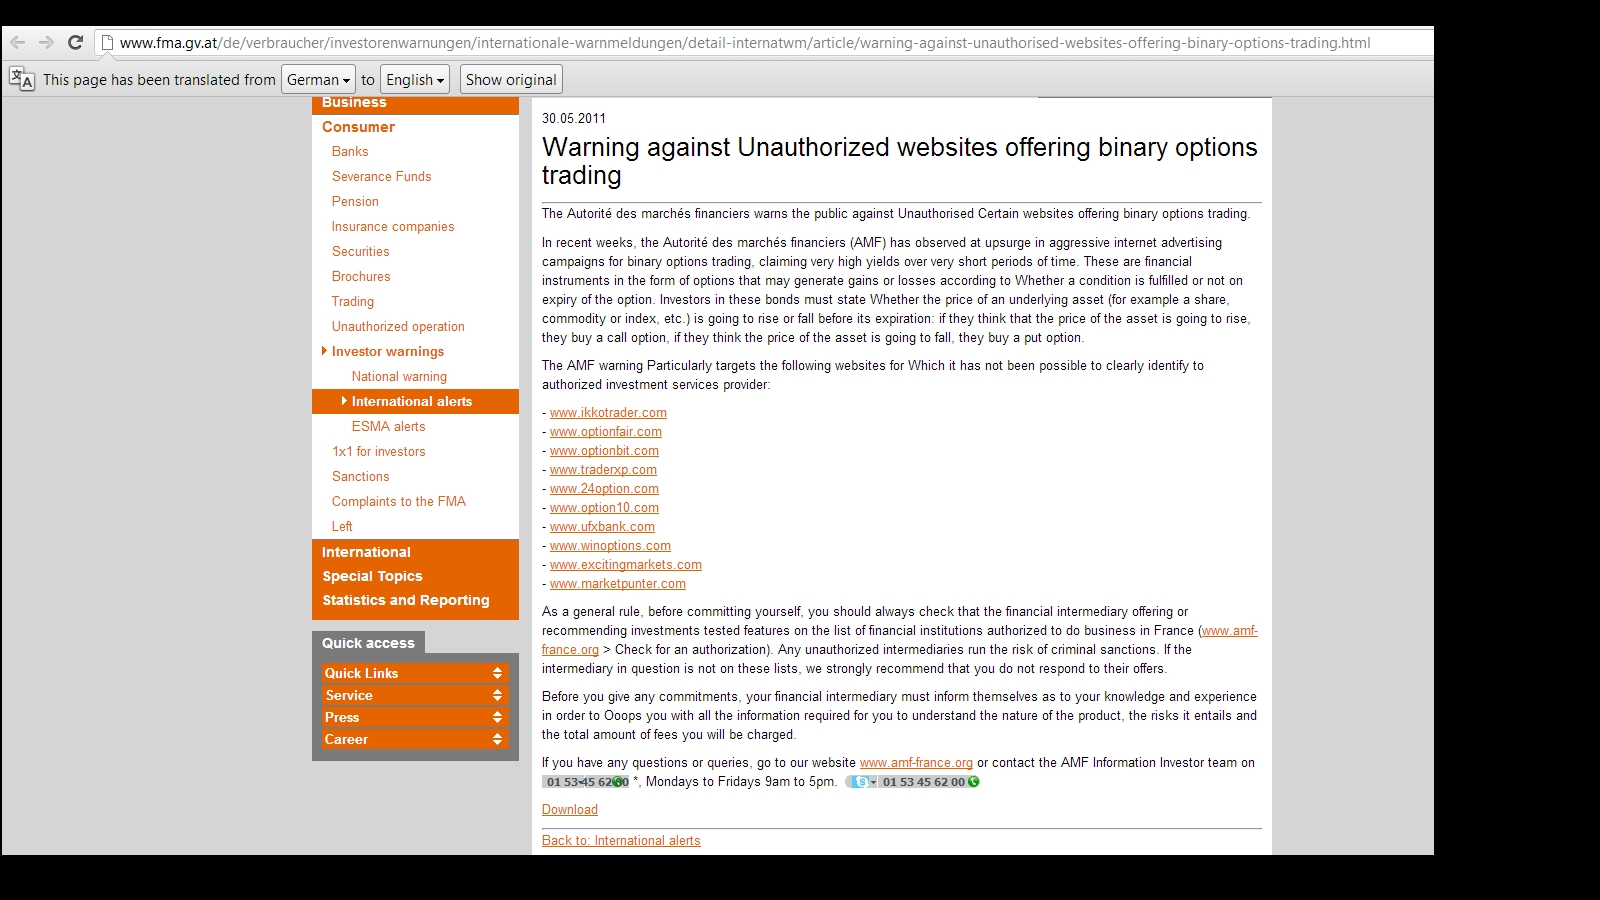 Cftc trade options form